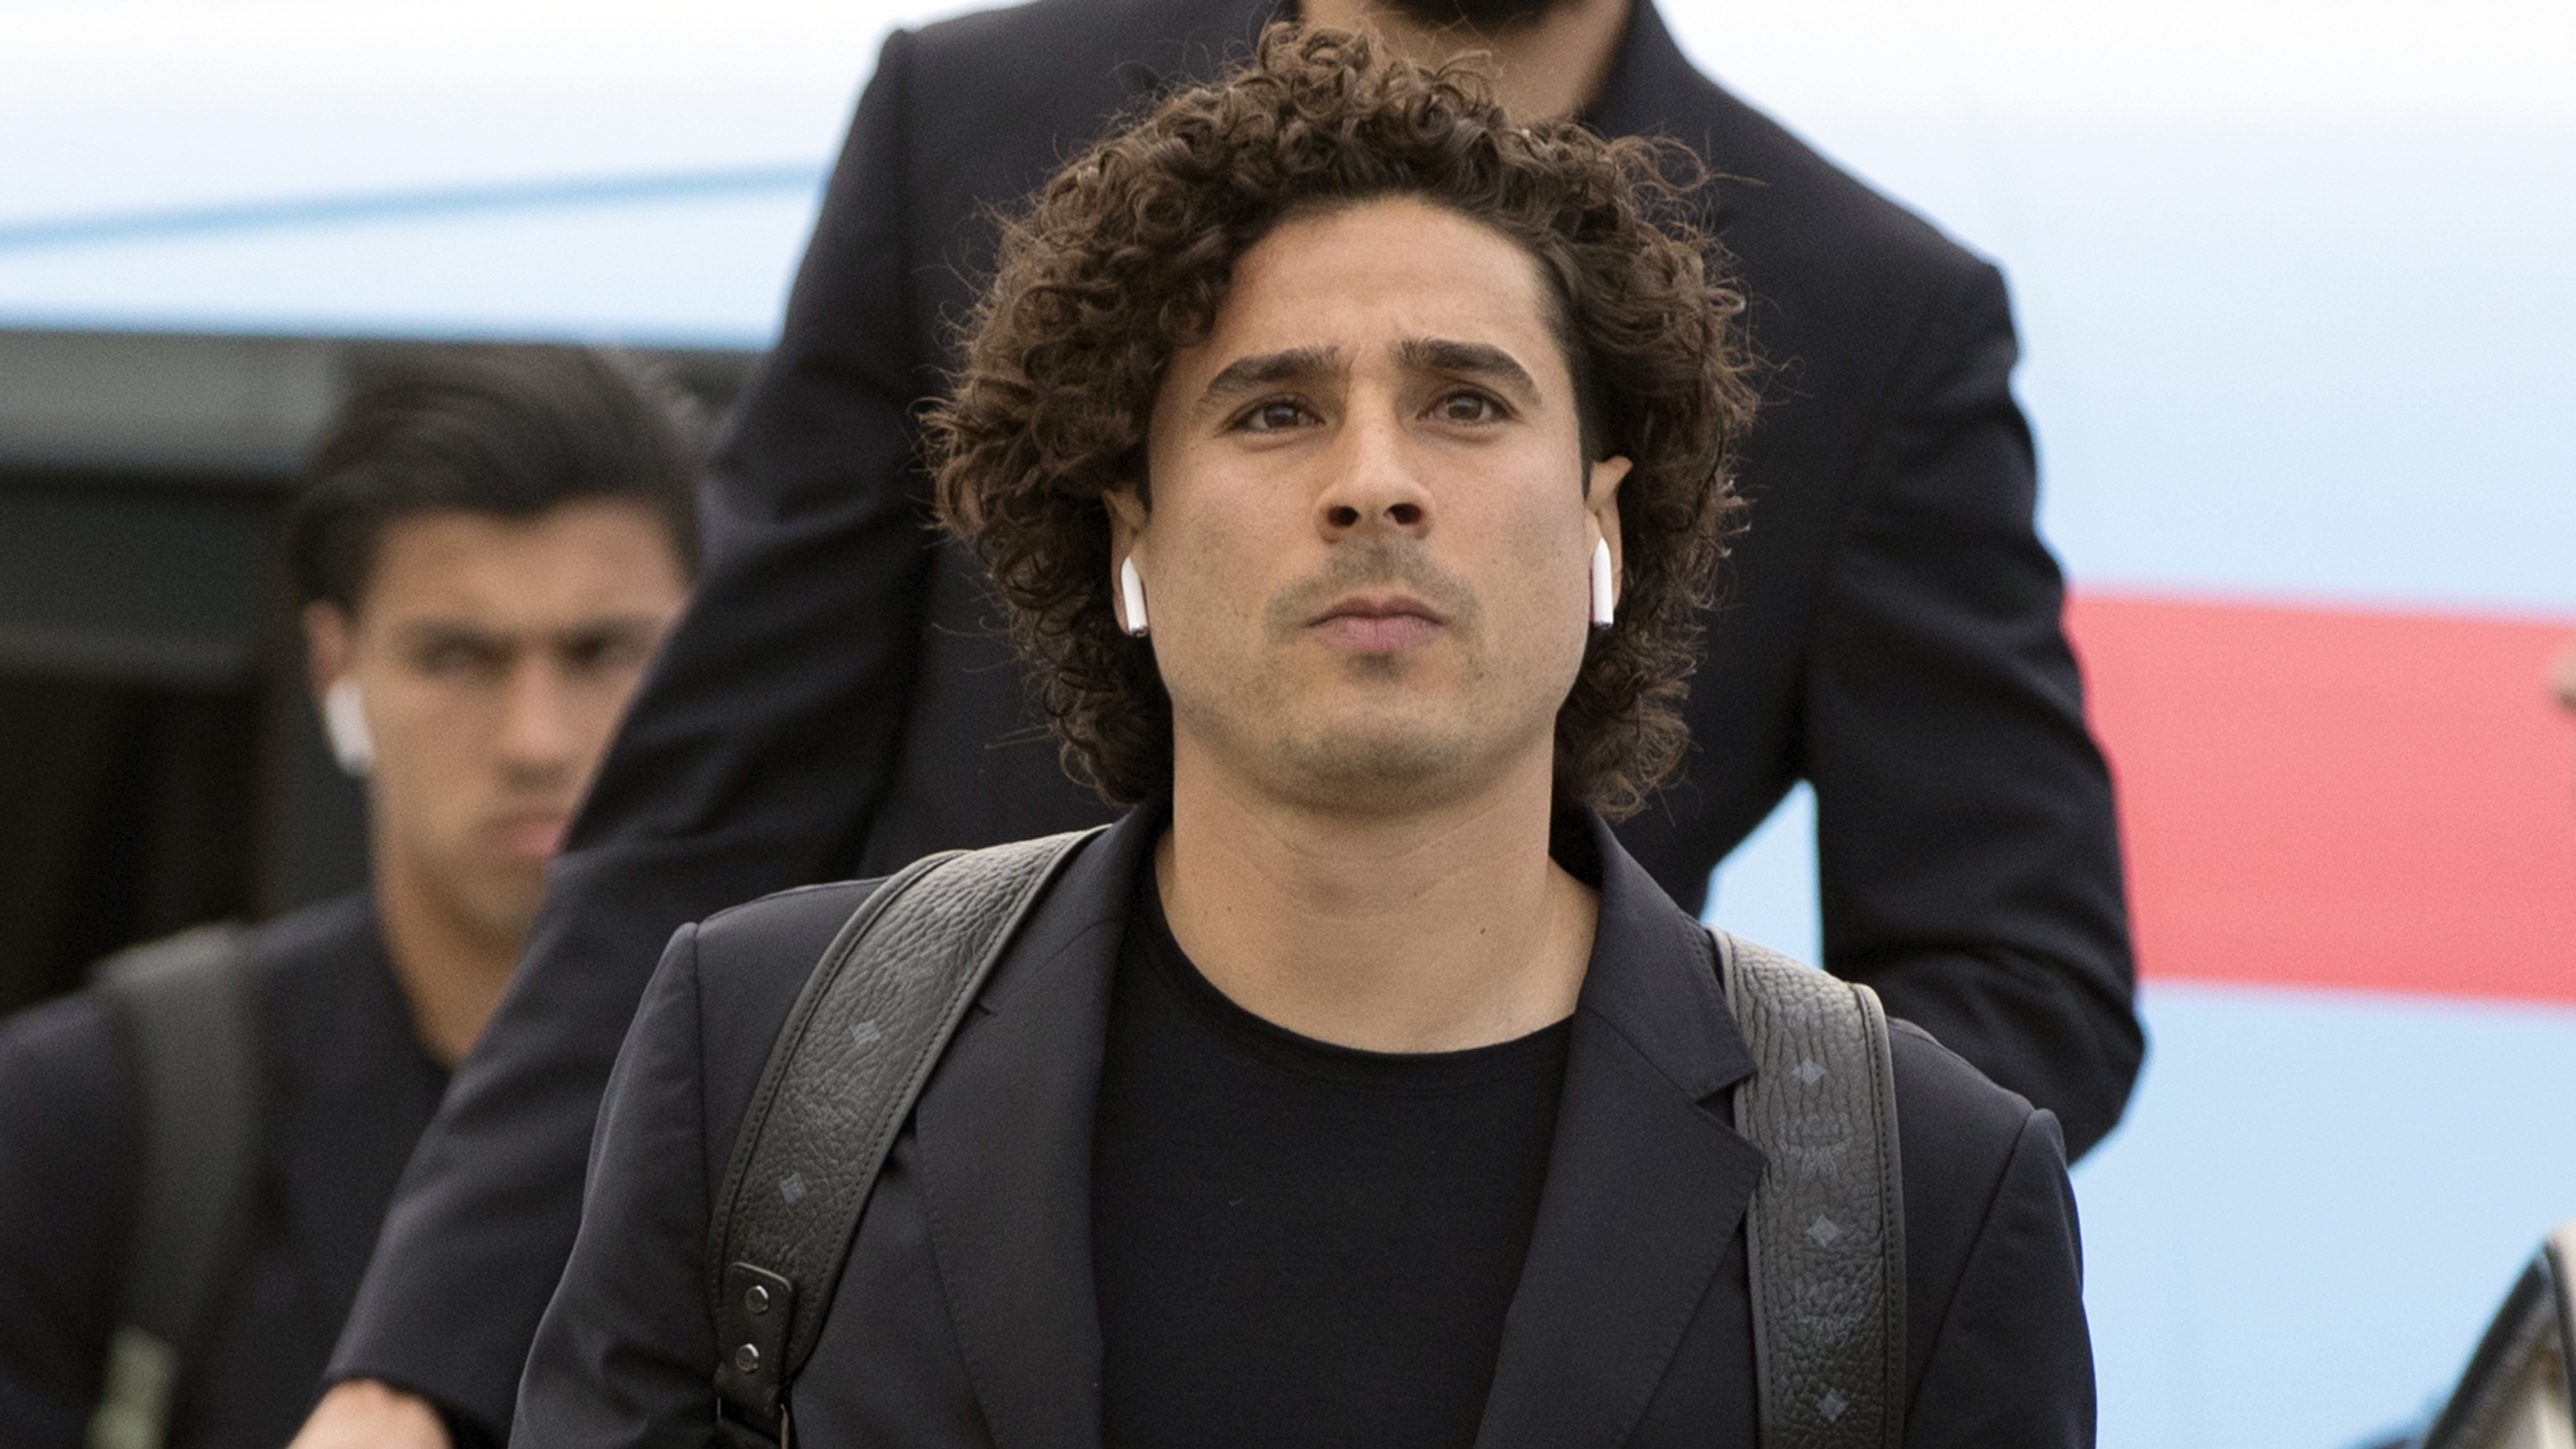 Guillermo Ochoa disembarks the plane as the Mexico national soccer team arrive at the Sheremetyevo international airport, outside Moscow, Russia, Monday, June 11, 2018 to compete in the 2018 World Cup in Russia. The 21st World Cup begins on Thursday, June 14, 2018, when host Russia takes on Saudi Arabia. (AP Photo/Pavel Golovkin)